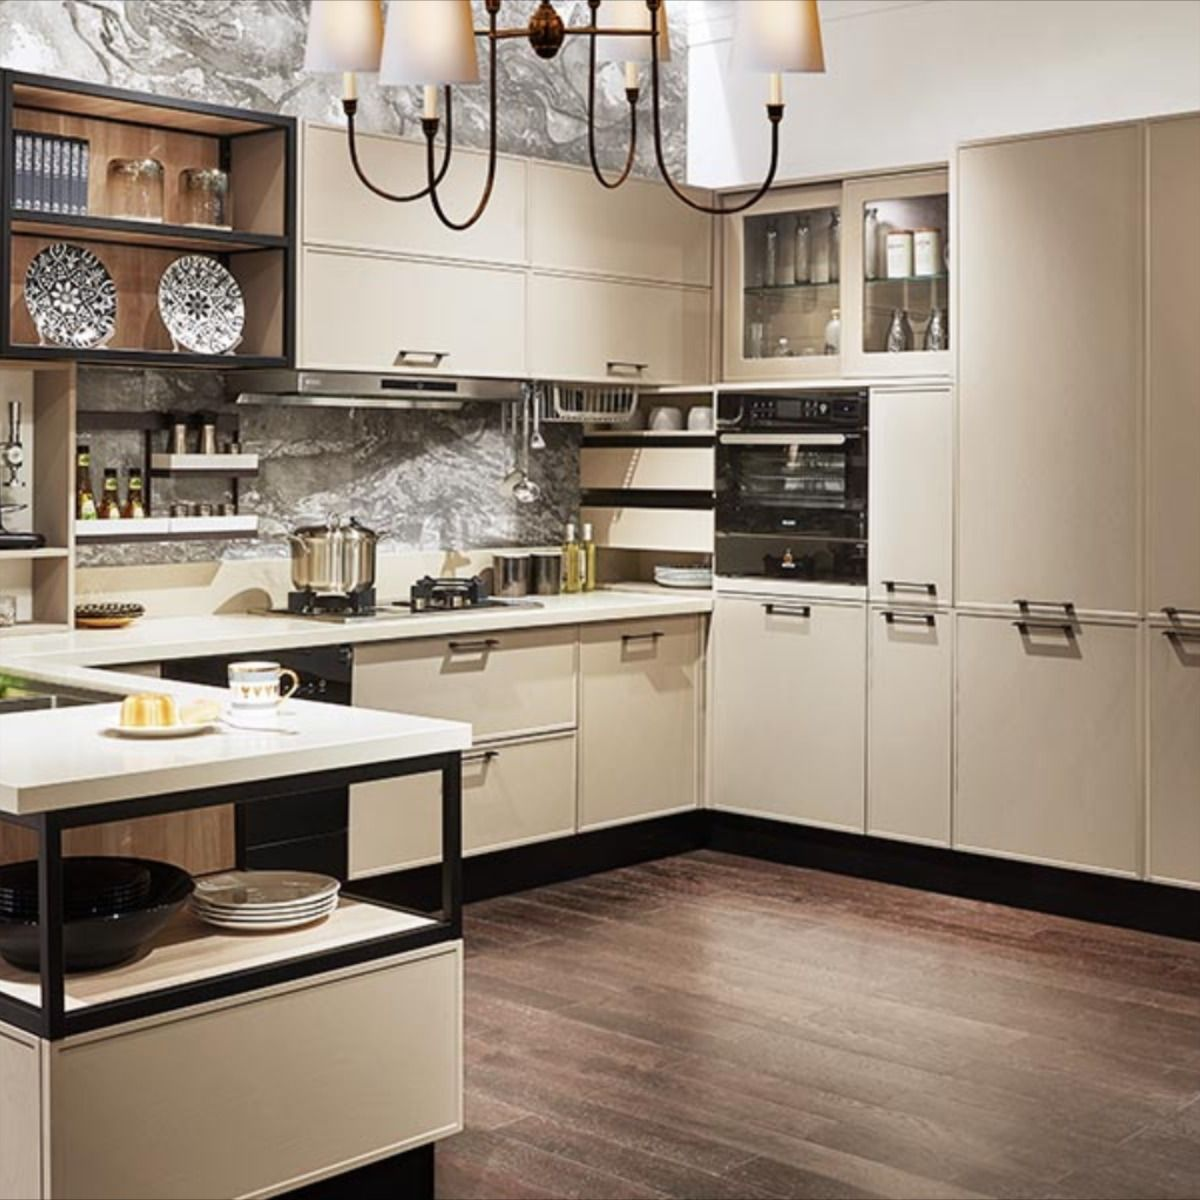 Nl Furniture U Kitchen With Industrial Style Elements Gives You Pure Comfort And Natural Experience In 2020 U Shaped Kitchen Cabinets Kitchen Cabinets Models Kitchen